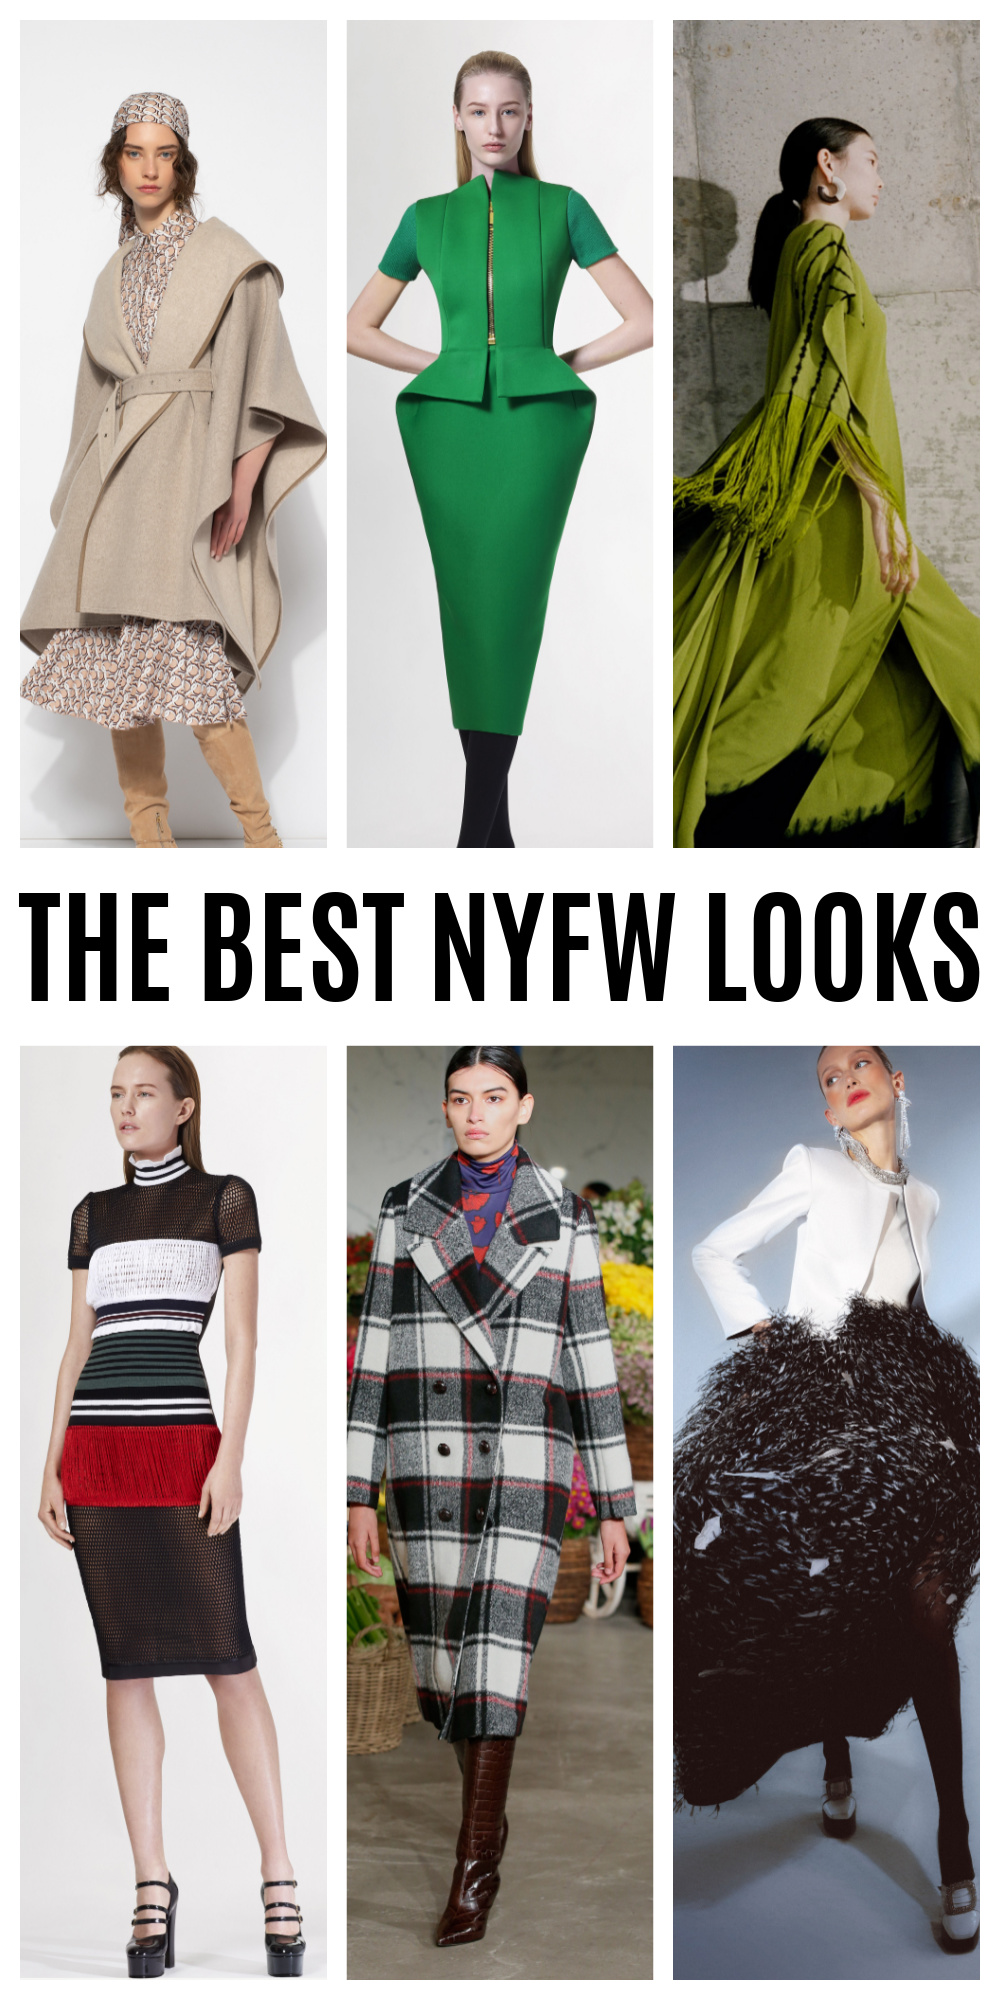 The Best NYFW Looks Fall 2021 Season I DreaminLace.com #fashionblog #womensfashion #fashionista